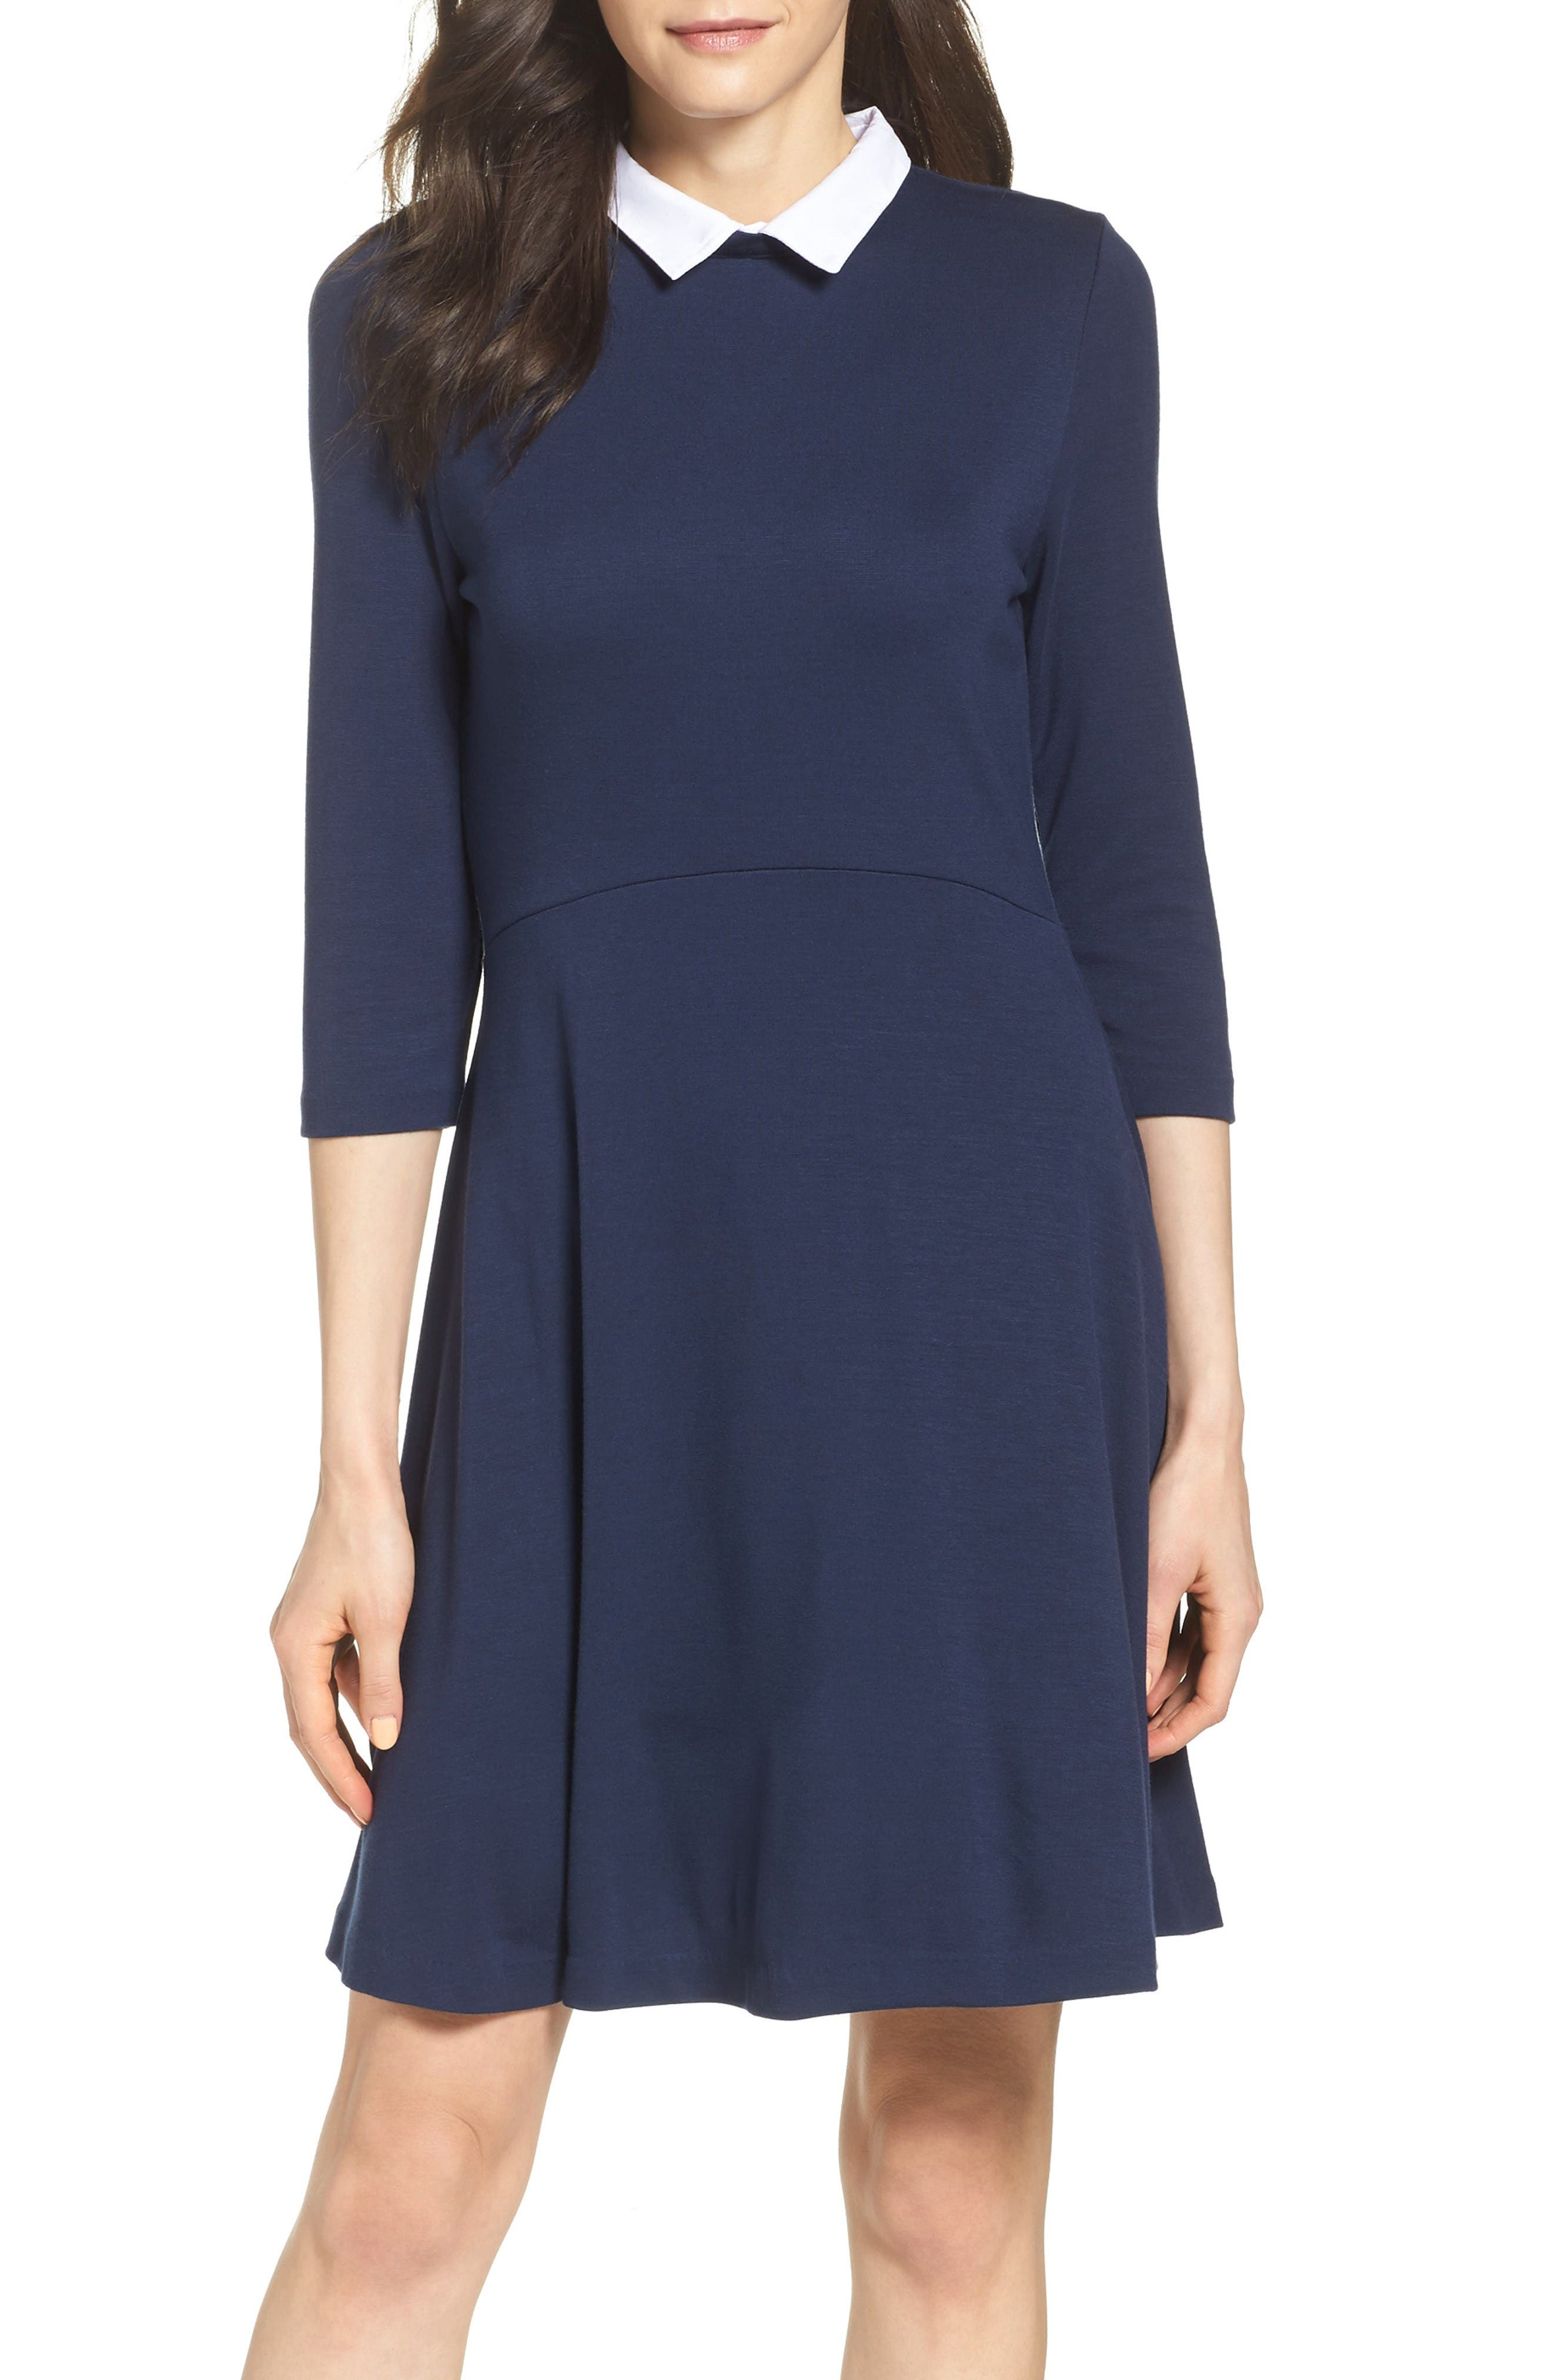 Alternate Image 1 Selected - French Connection 'Fast Fresh' Collared Jersey Fit & Flare Dress